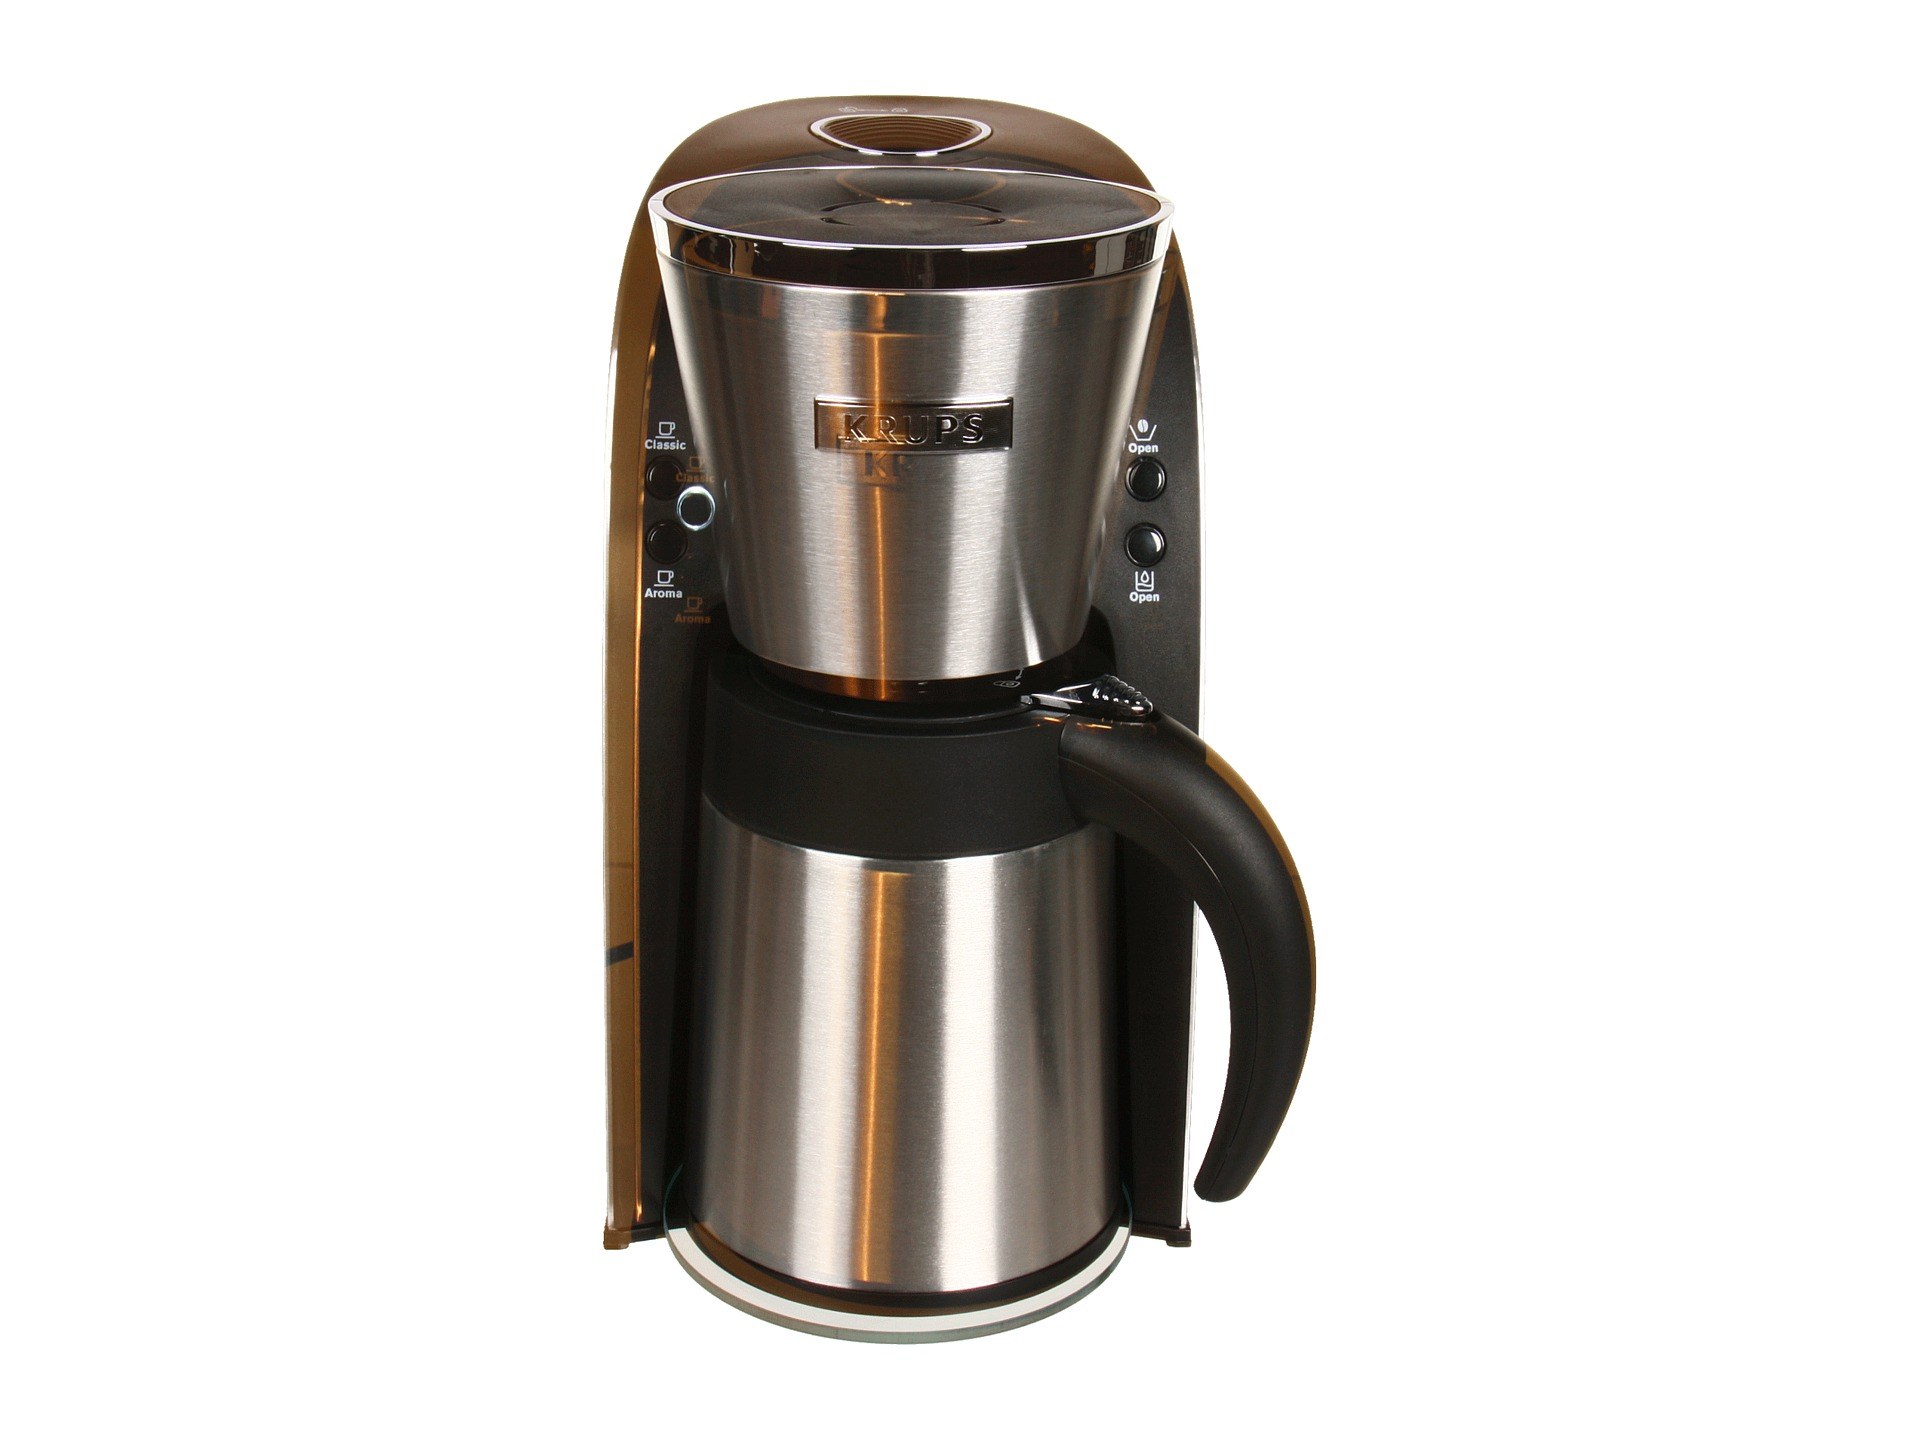 Krups Kt720d50 10 Cup Thermal Filter Coffee Maker Shipped Free at Zappos